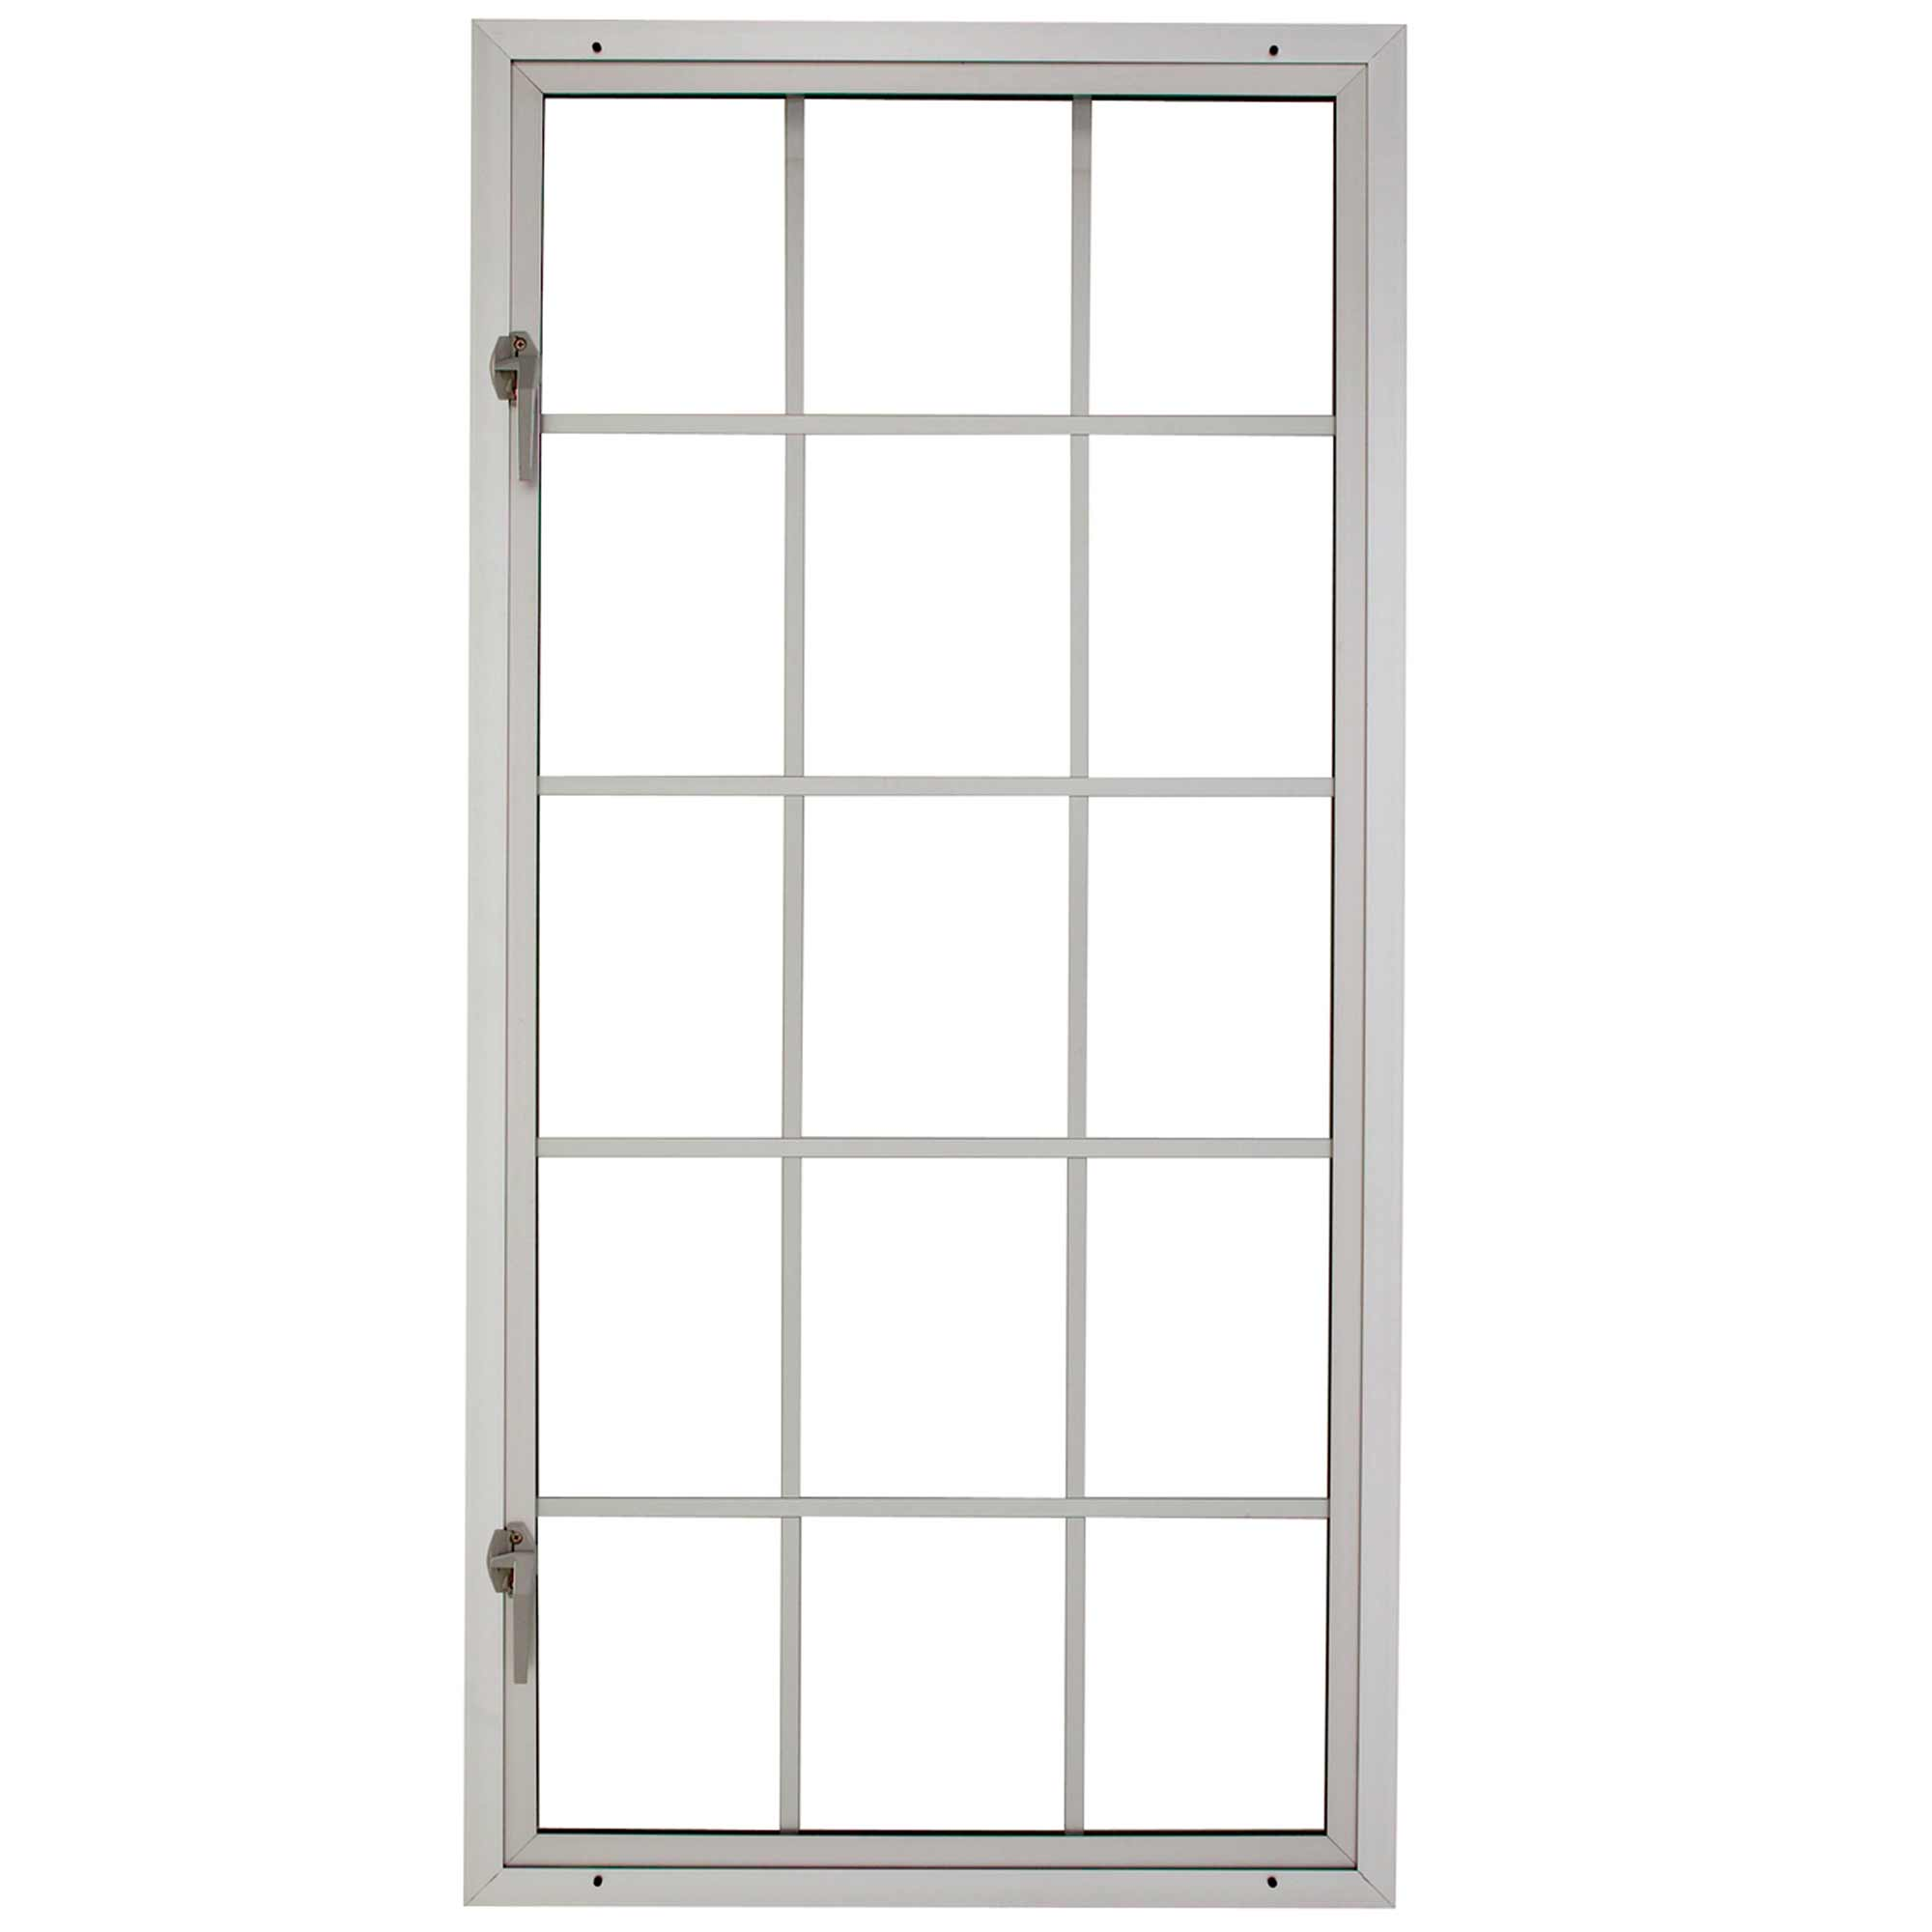 How to replace aluminum frame windows louisiana bucket for Replacement window sizes